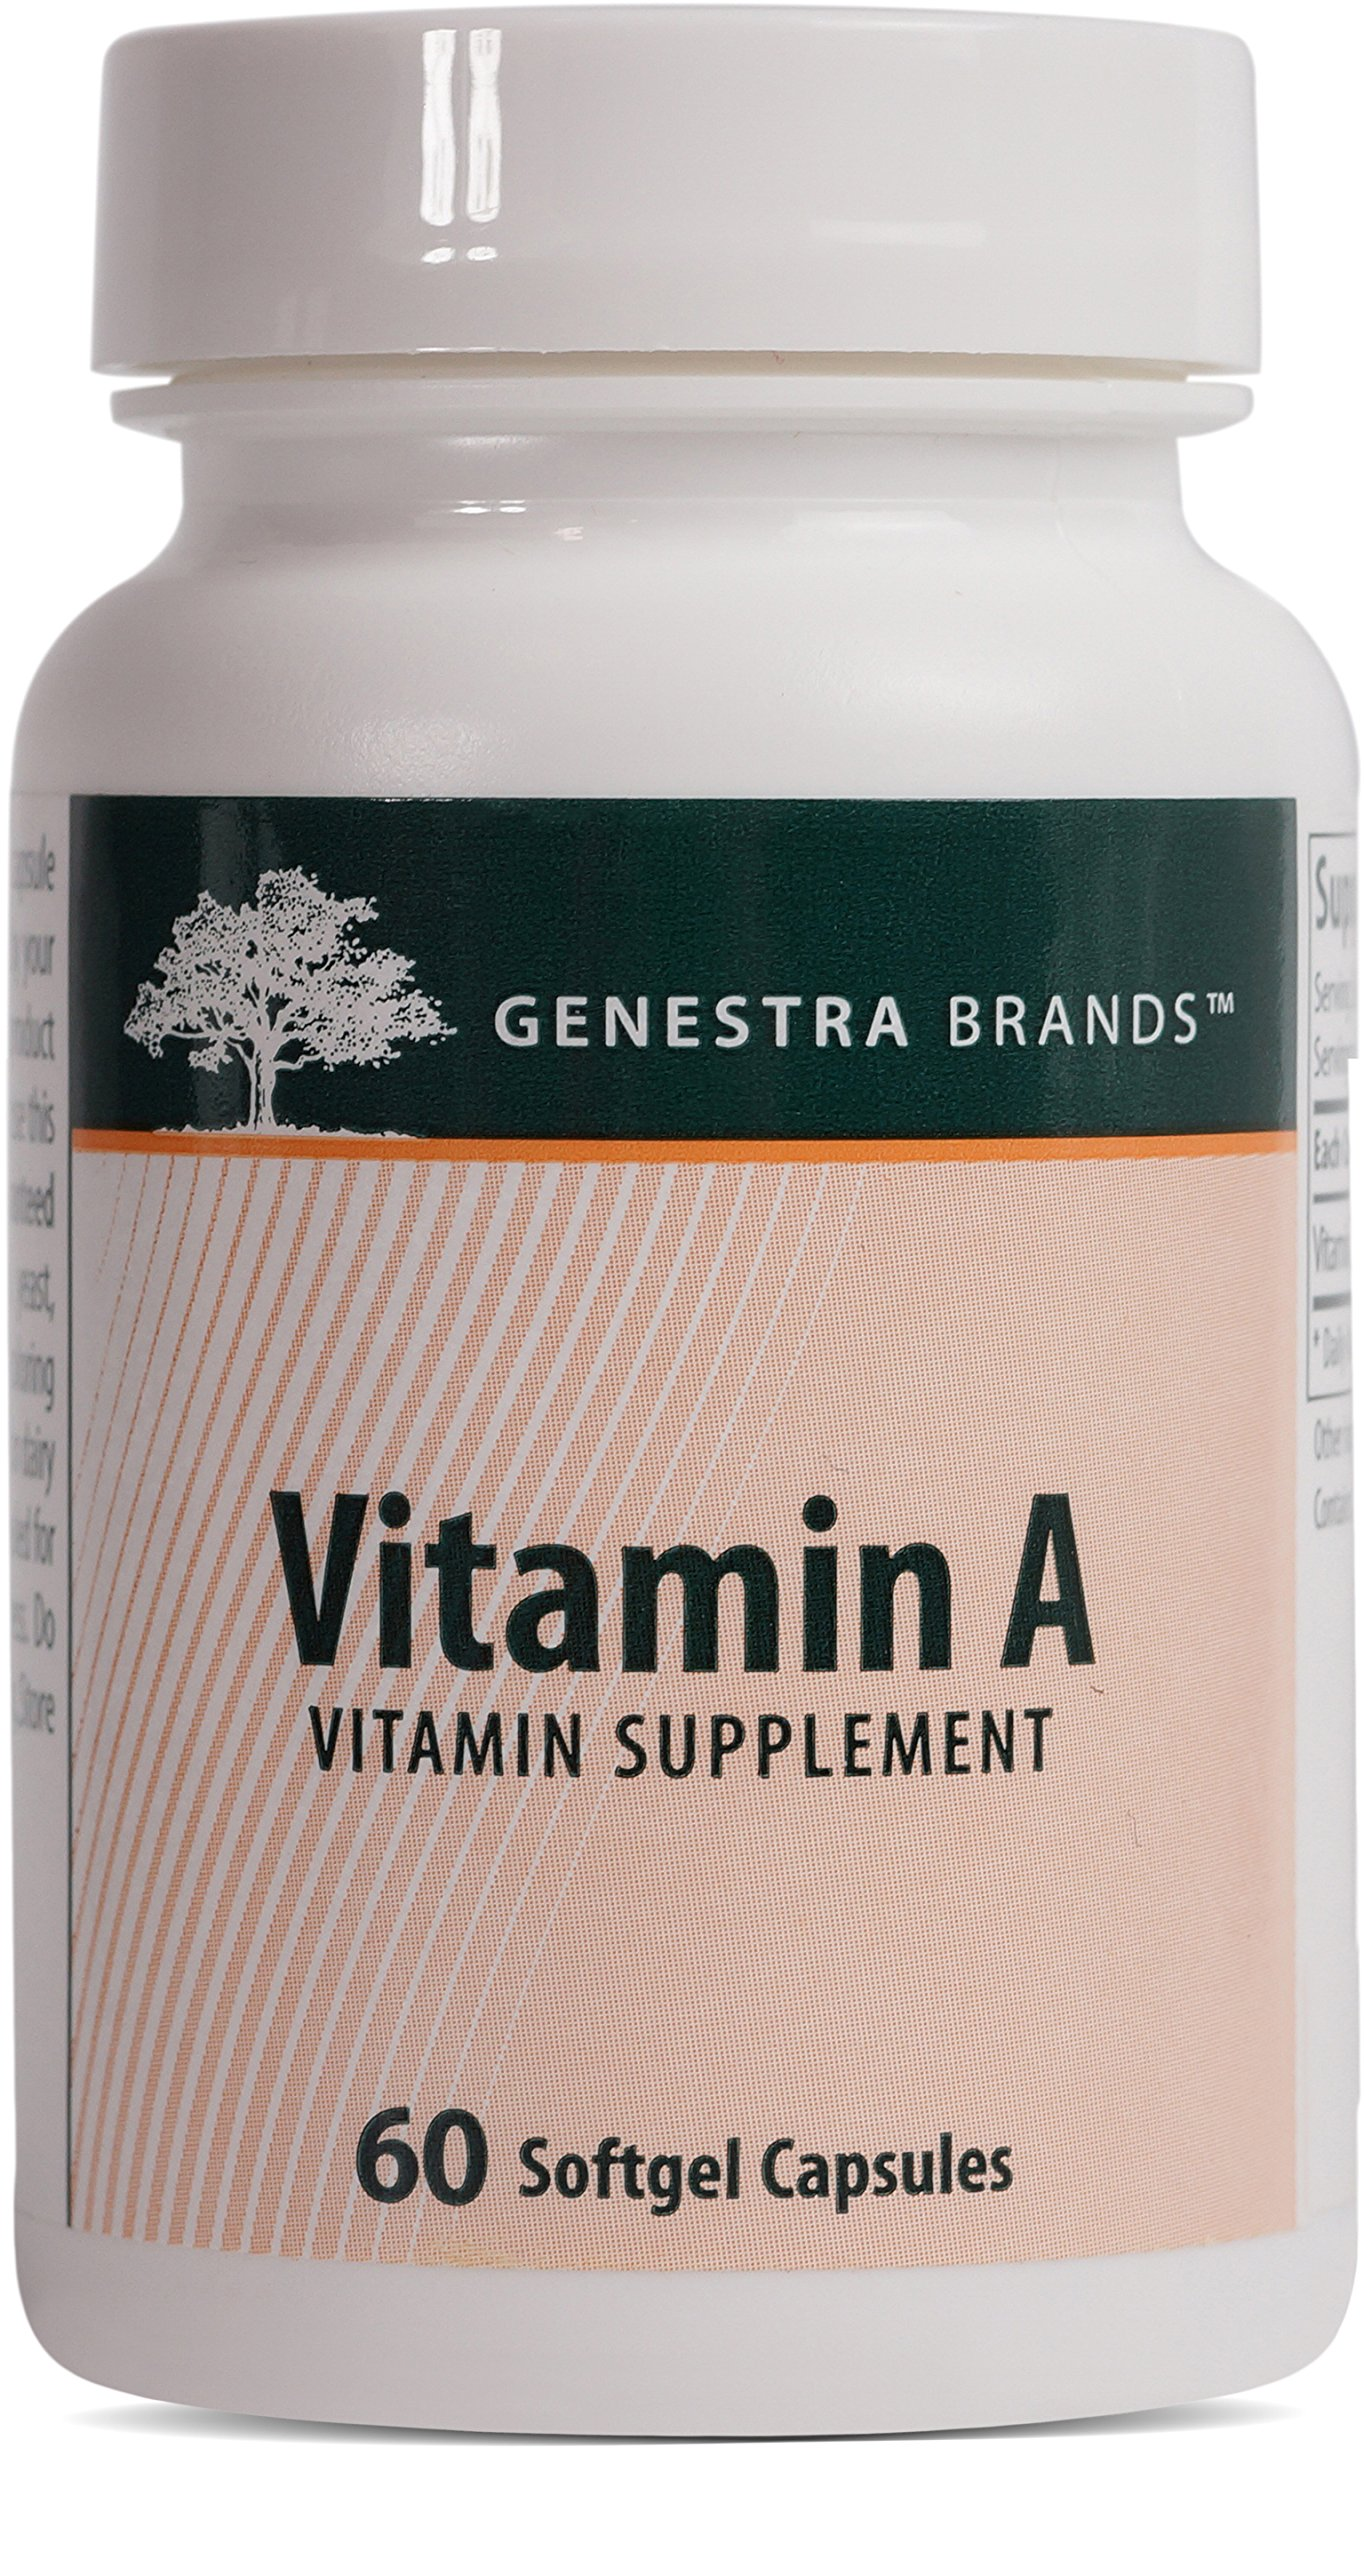 Genestra Brands - Vitamin A - Helps Maintain Eyesight, Skin Membranes and Immune Function* - 60 Softgel Capsules